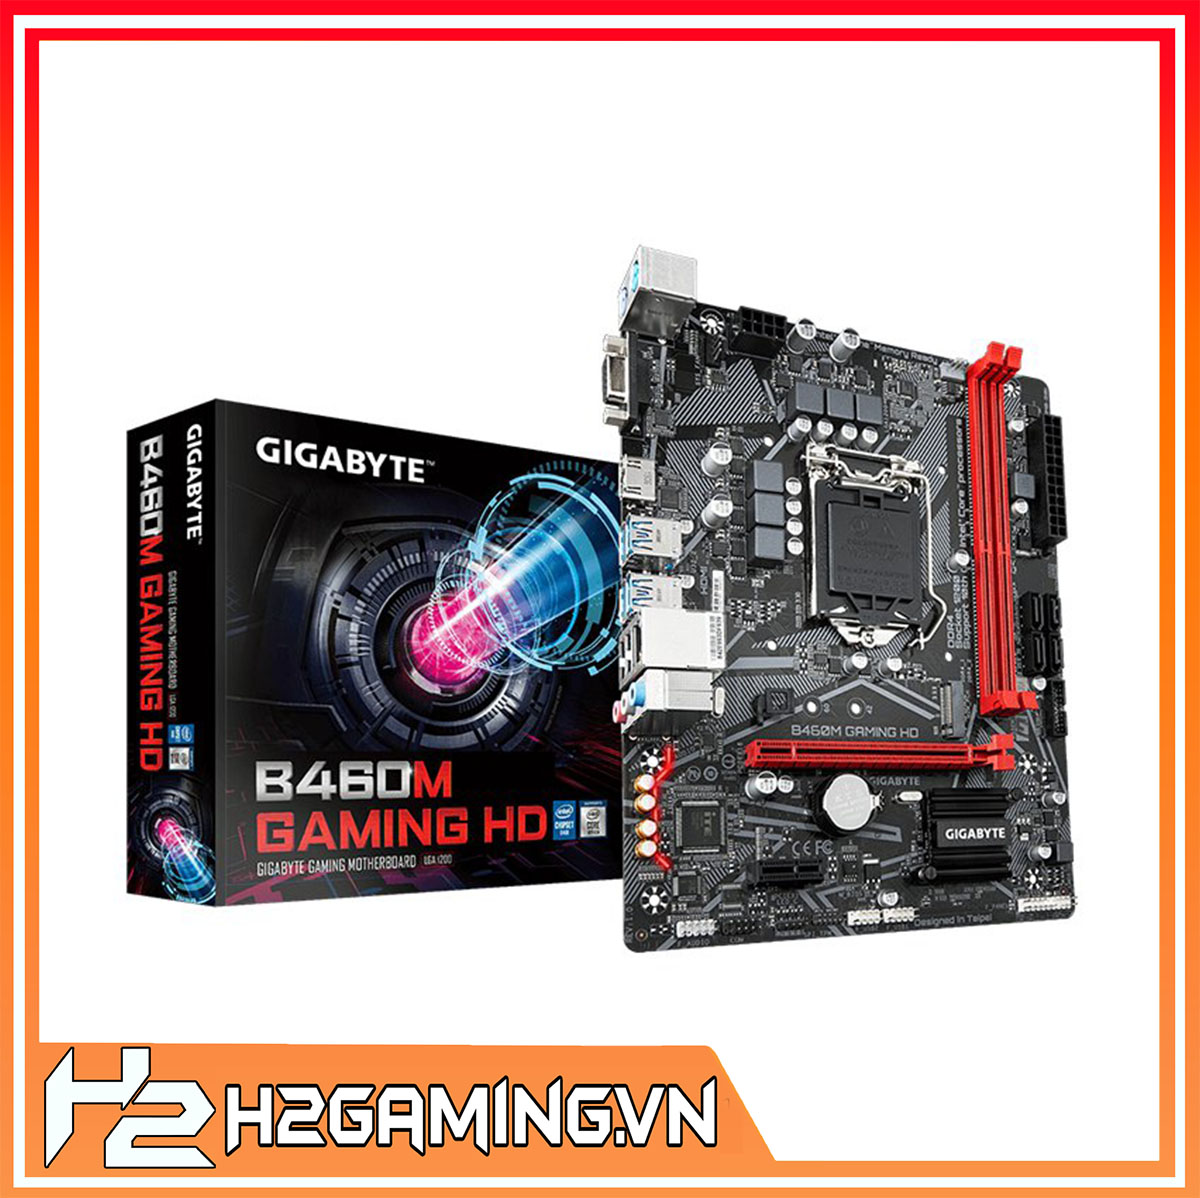 Mainboard_Gigabyte_B460M_GAMING_HD_(Intel_B460,_Socket_1200,_m-ATX,_2_khe_RAM_DDR4)_3